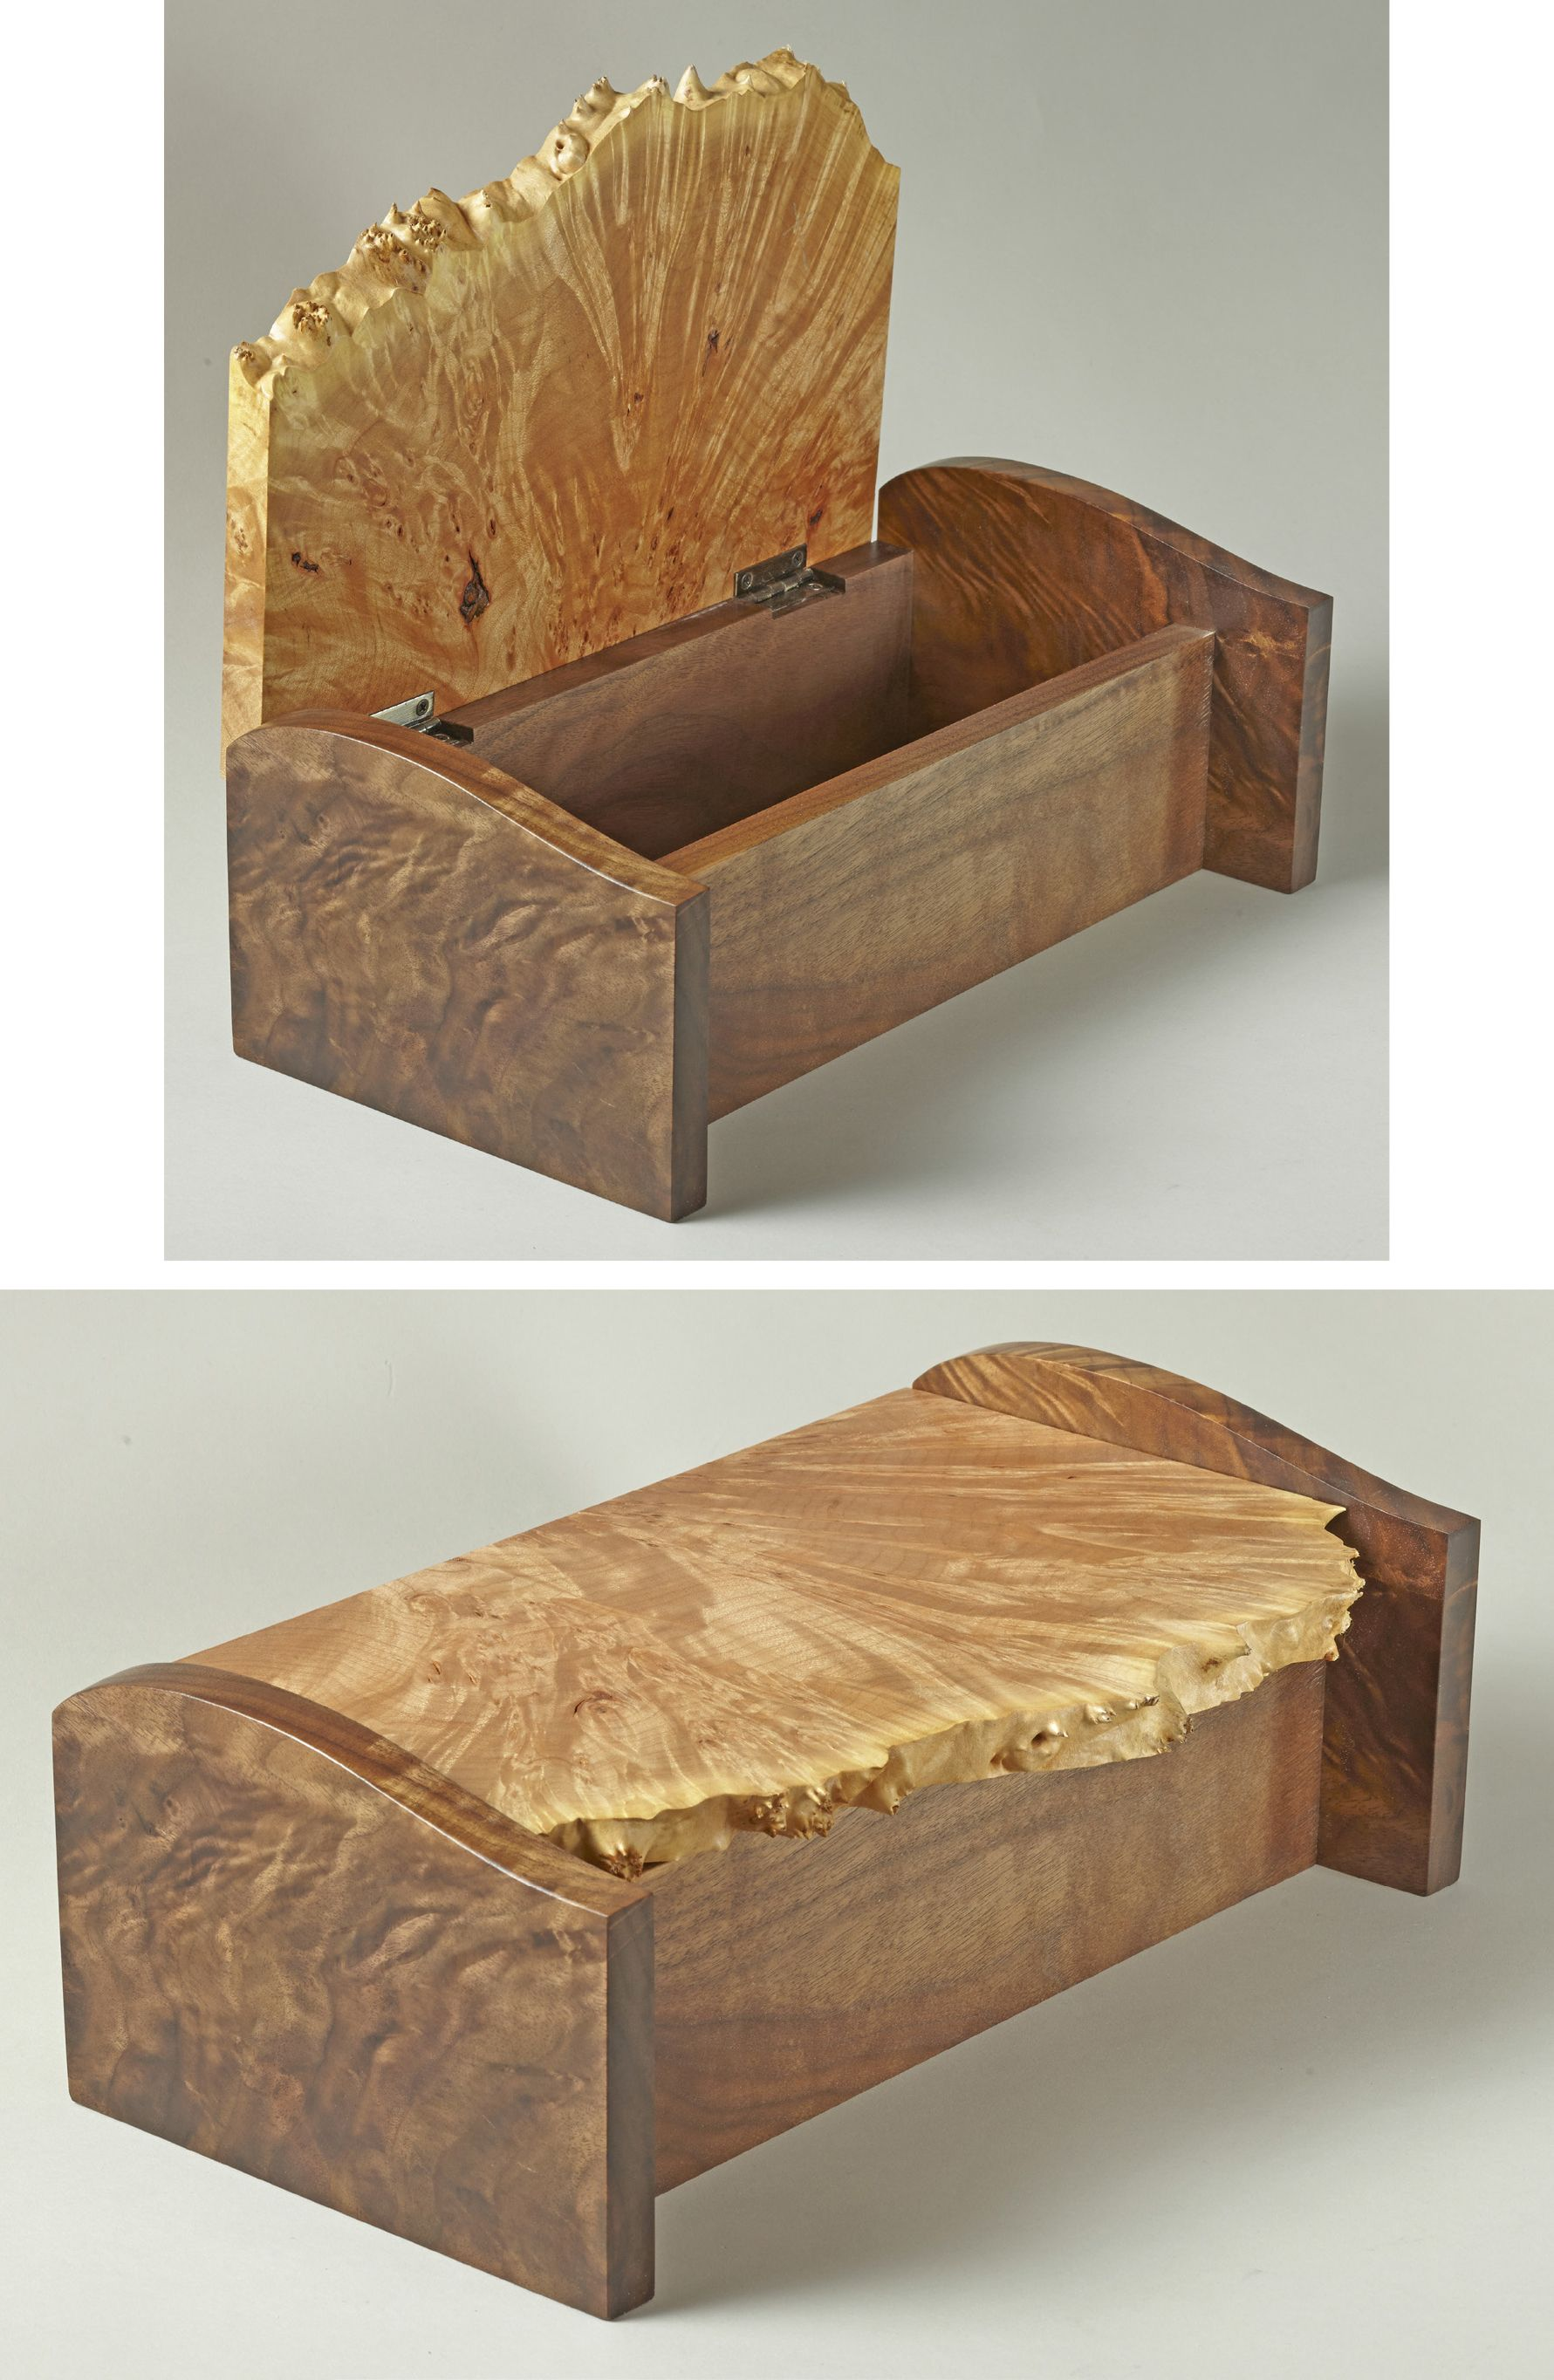 novica artisan decor lombok duo lids with bali decorative boxes from crafted pair wood box p